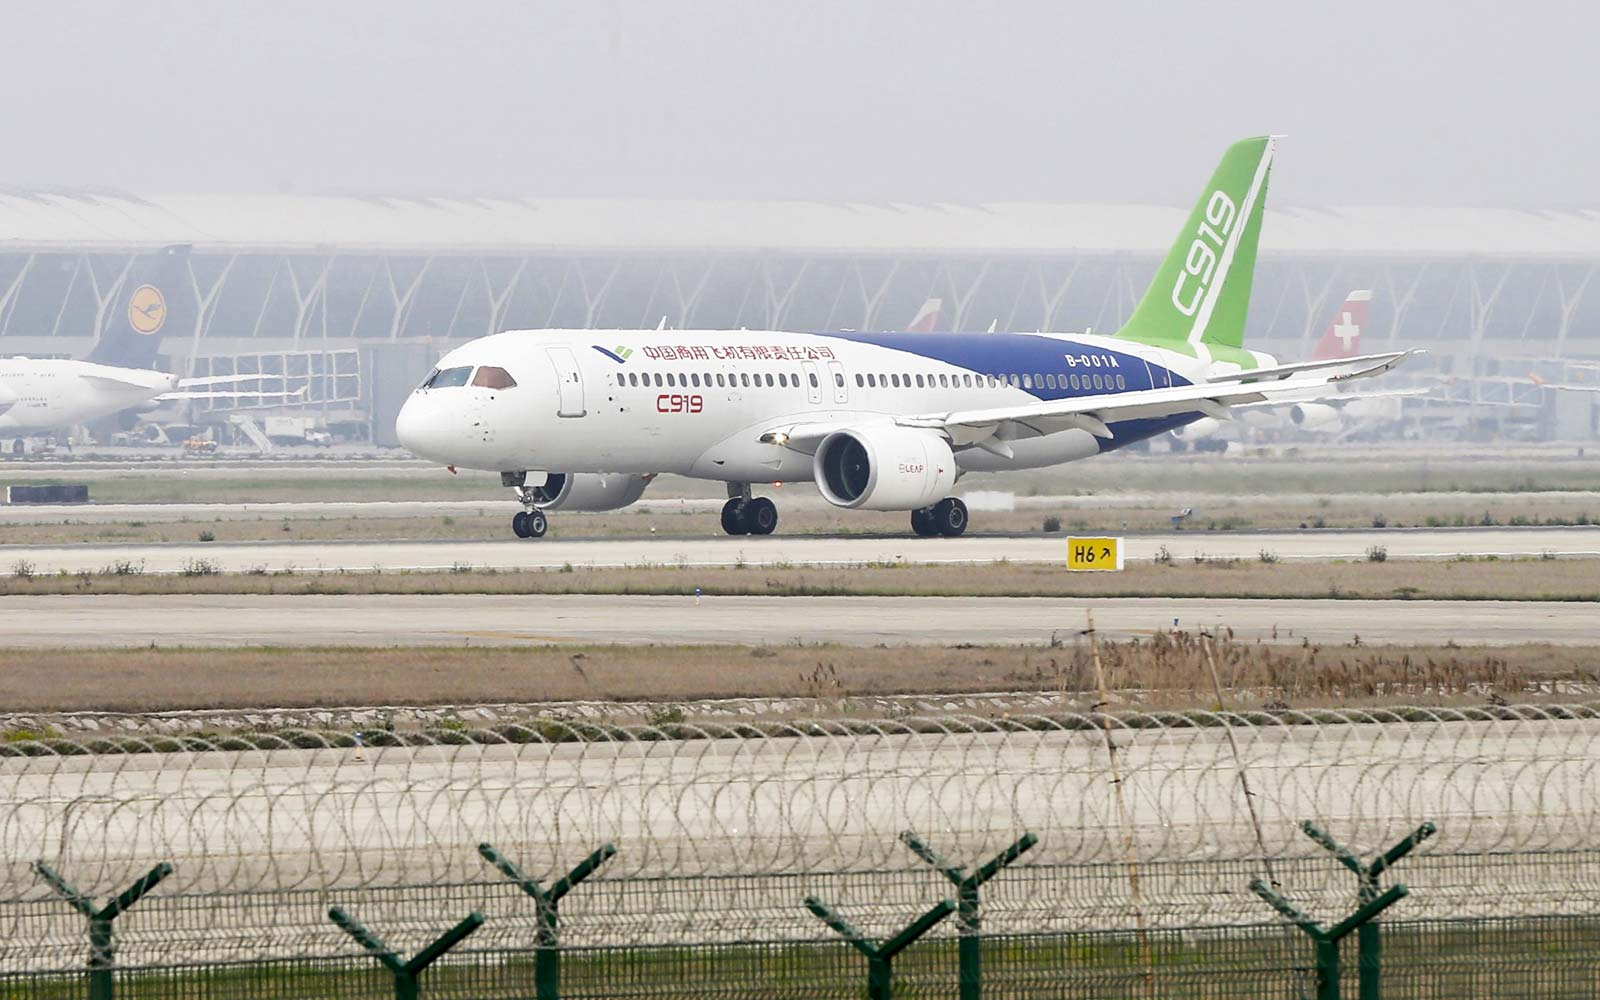 China's First Passenger Jet Has Been Cleared for Takeoff